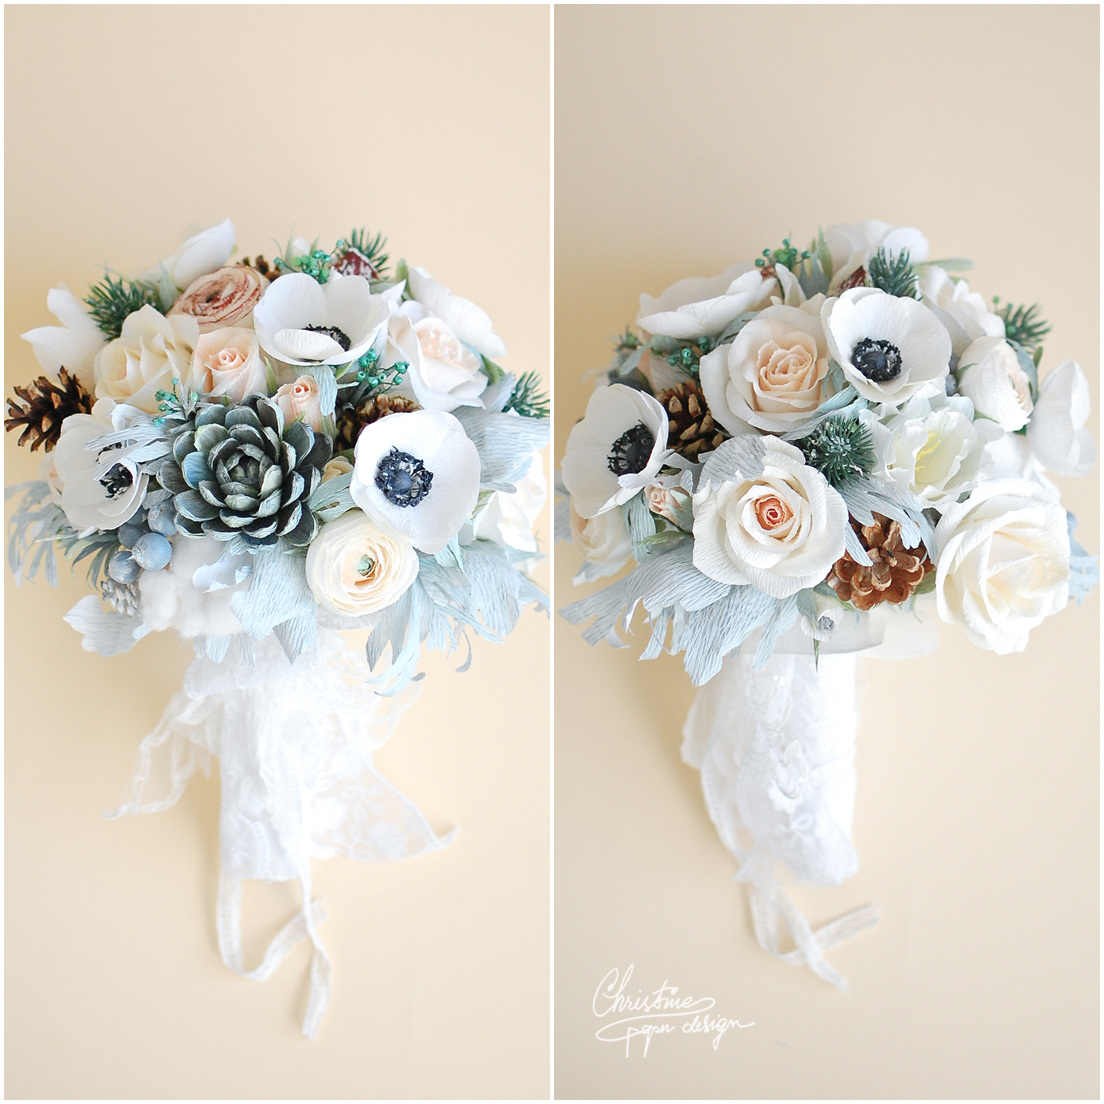 3Christine paper design - alternative wedding bouquet